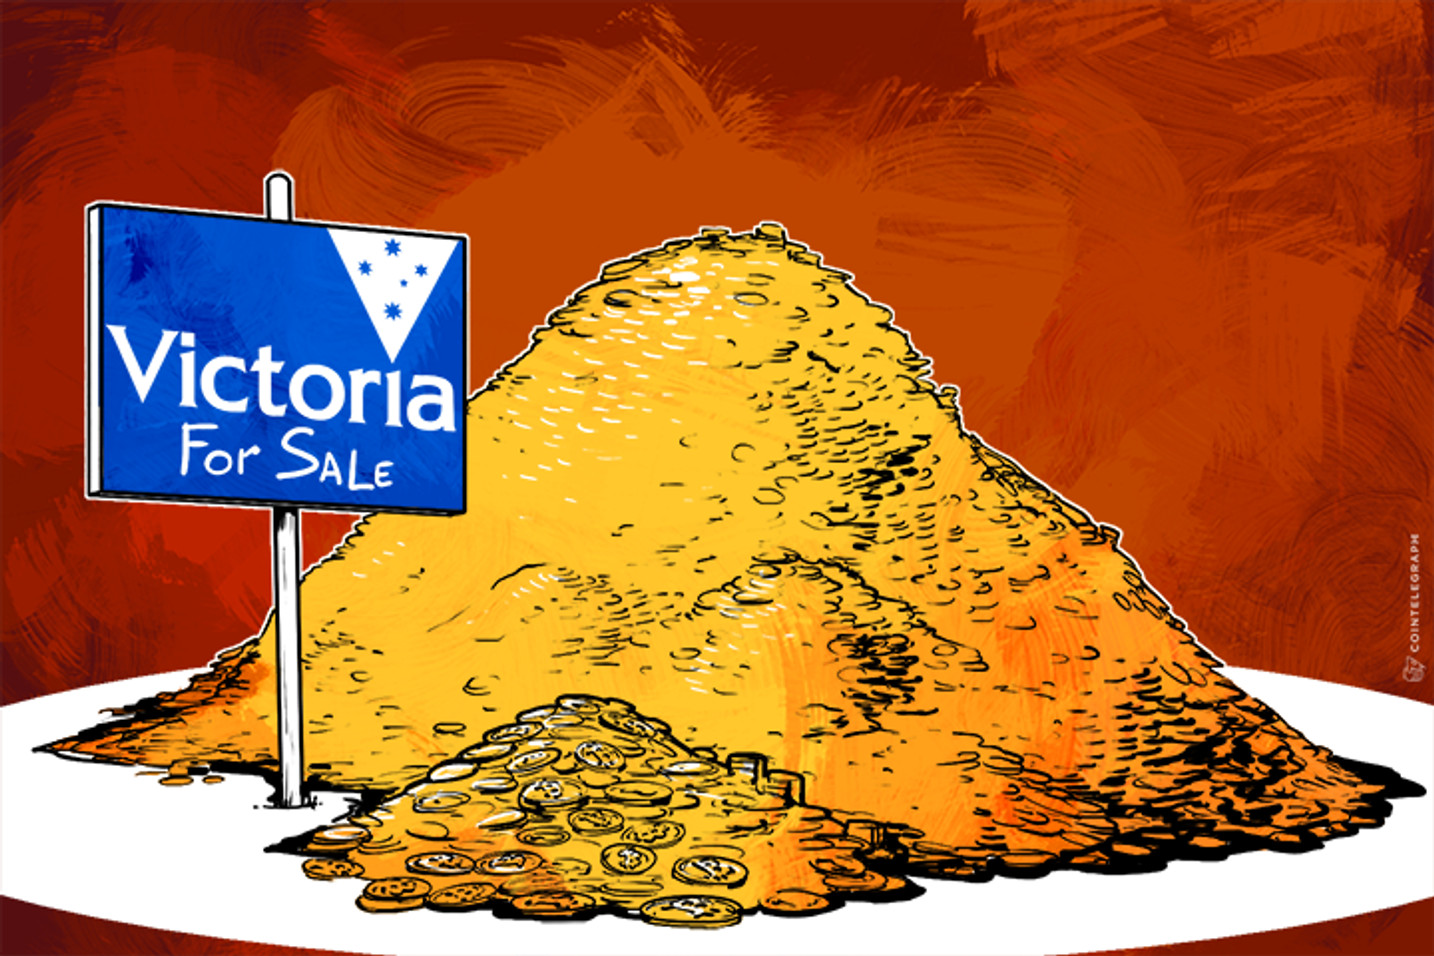 Victorian Government Wants to 'Make the Most of' 24,500 BTC Confiscated From Online Drug Dealer